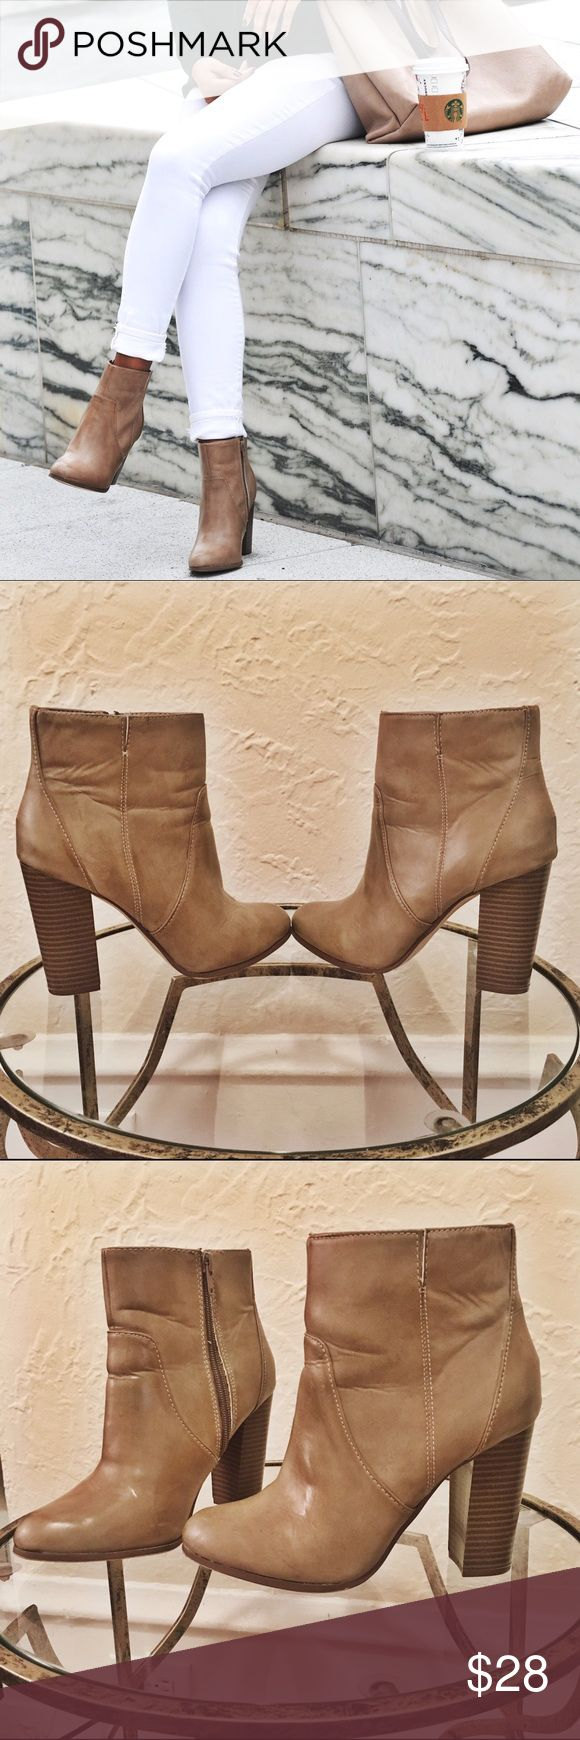 Aldo for target Taupe booties Super cute taupe booties. Zip inside. Wide ankle mouth. Aldo for target, unavailable is stores now. Aldo Shoes Ankle Boots & Booties